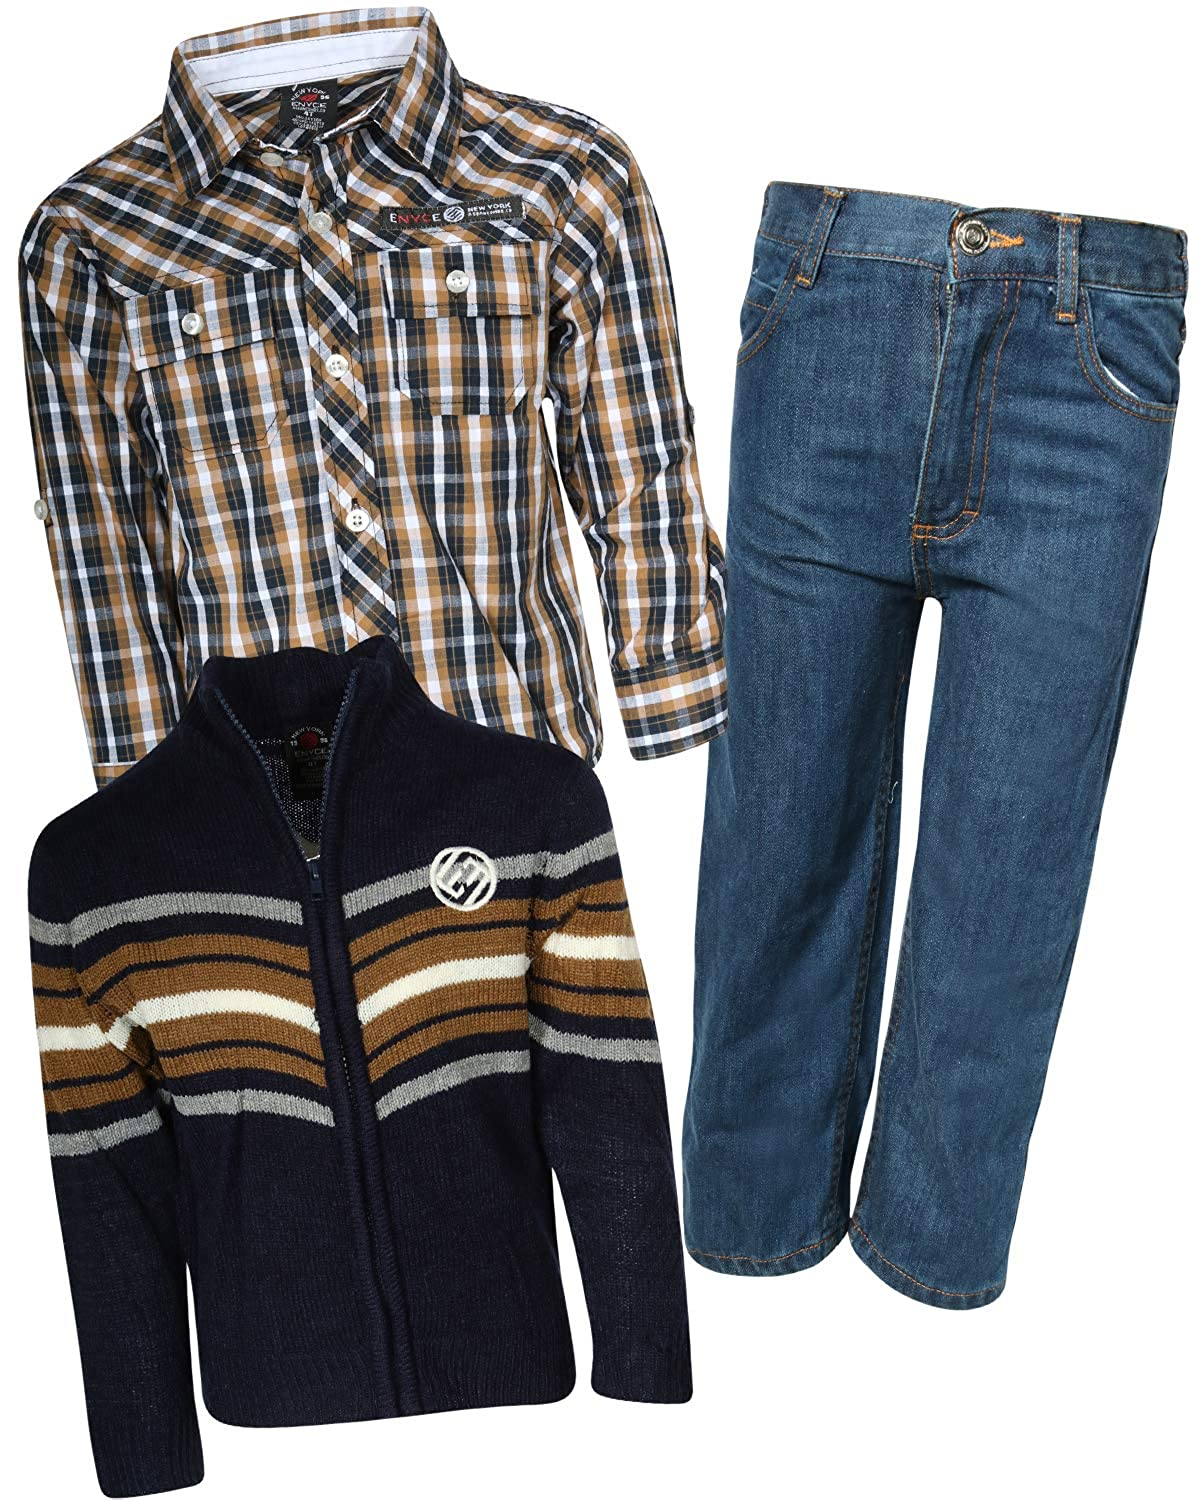 Enyce Boys 3-Piece Pant Set with Zip-Up Sweater & Woven Shirt